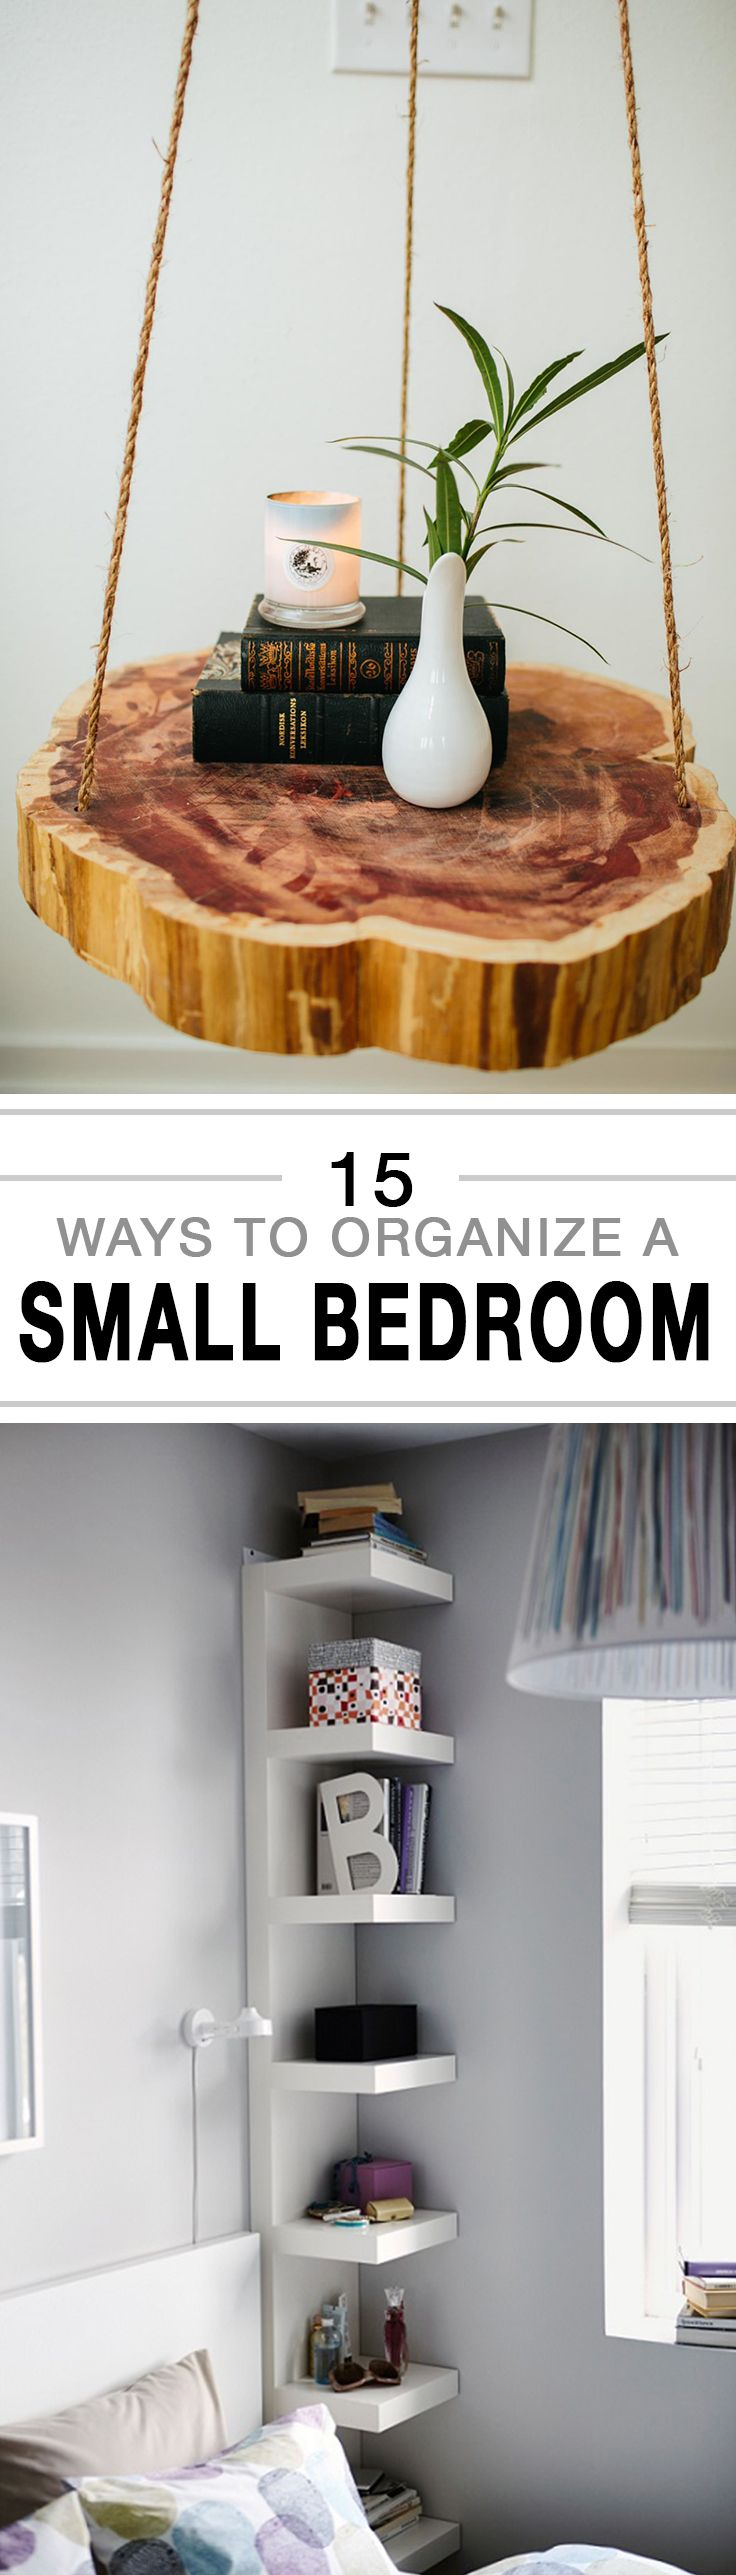 Best 15 Ways To Organize A Small Bedroom Small Bedroom 400 x 300